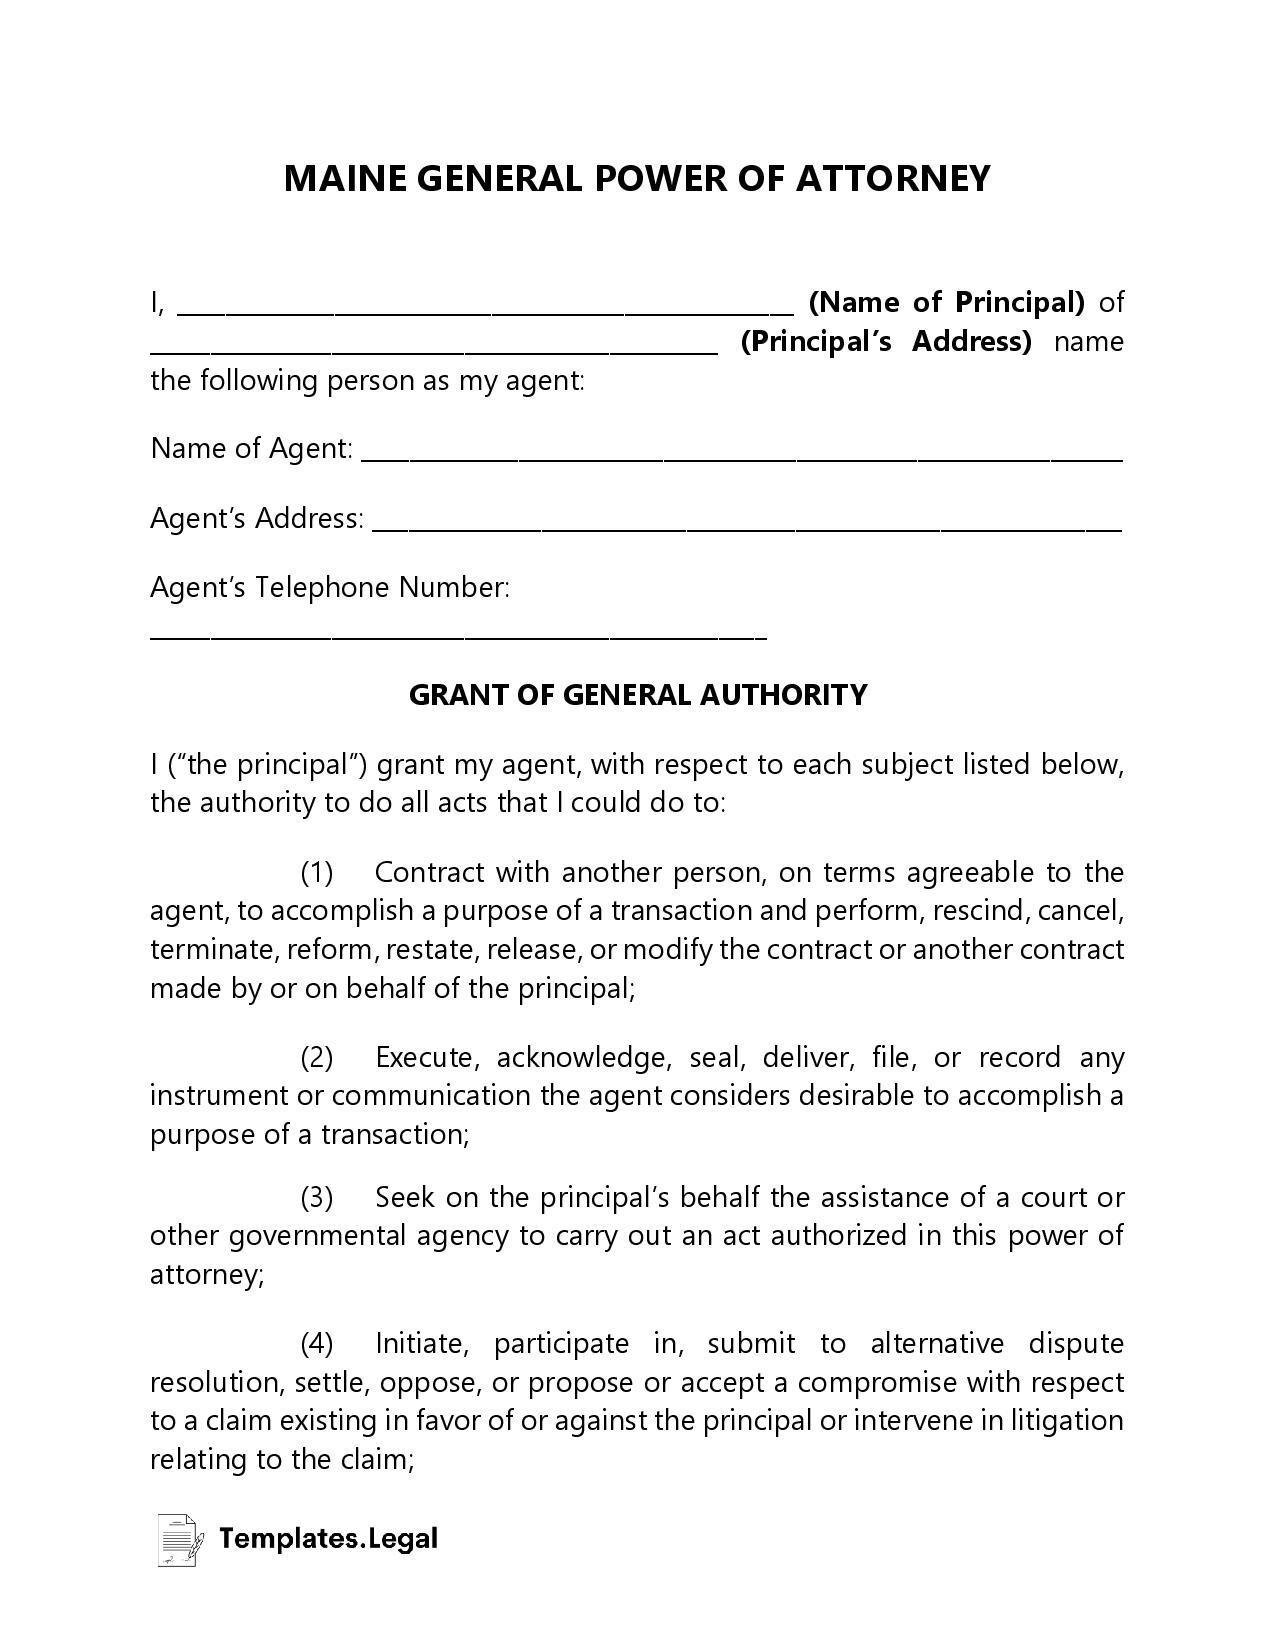 Maine General Power of Attorney - Templates.Legal